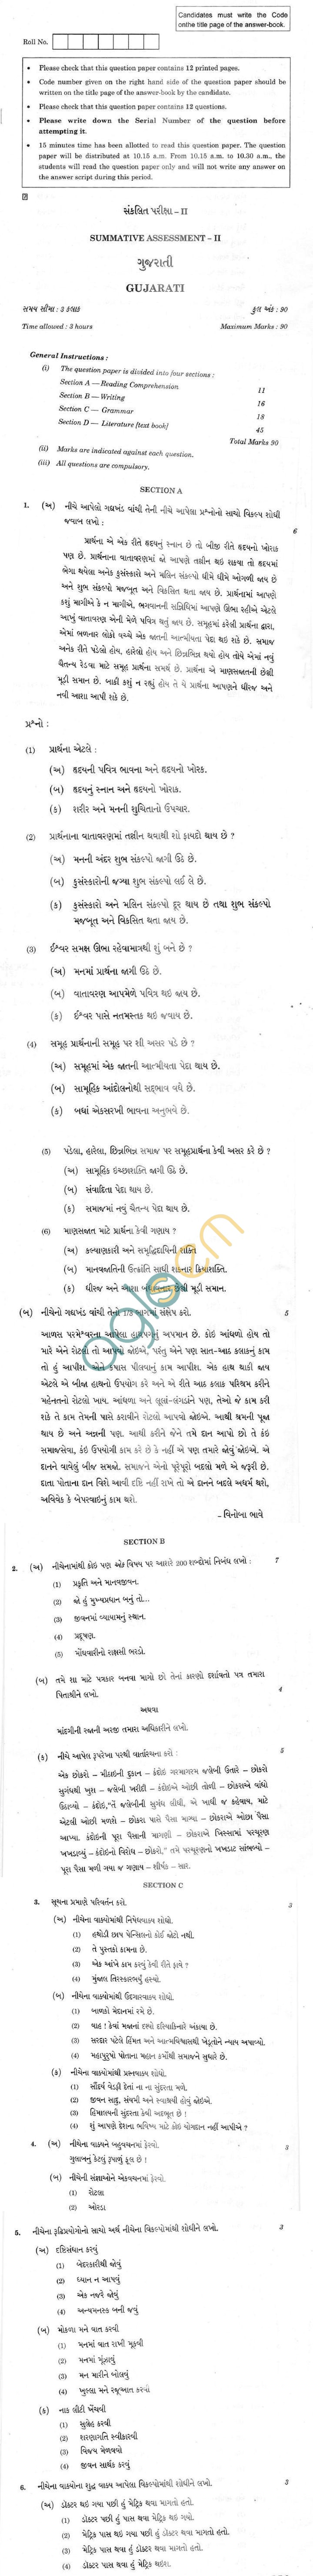 CBSE Compartment Exam 2013 Class X Question Paper - Gujarati